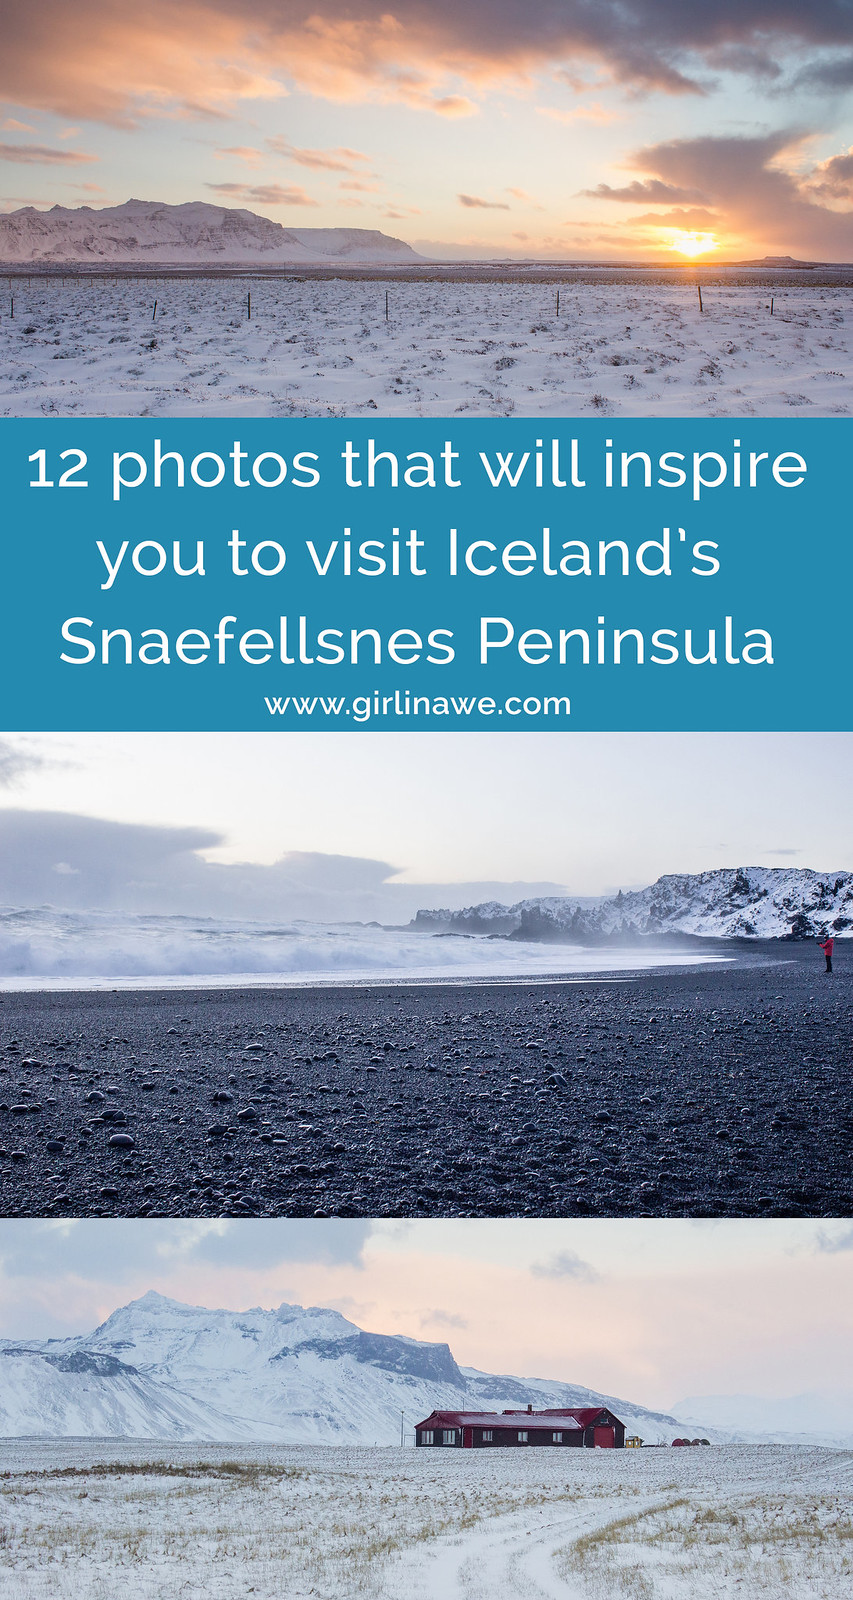 12 photos to inspire you to visit Iceland's Snaefellsnes Peninsula